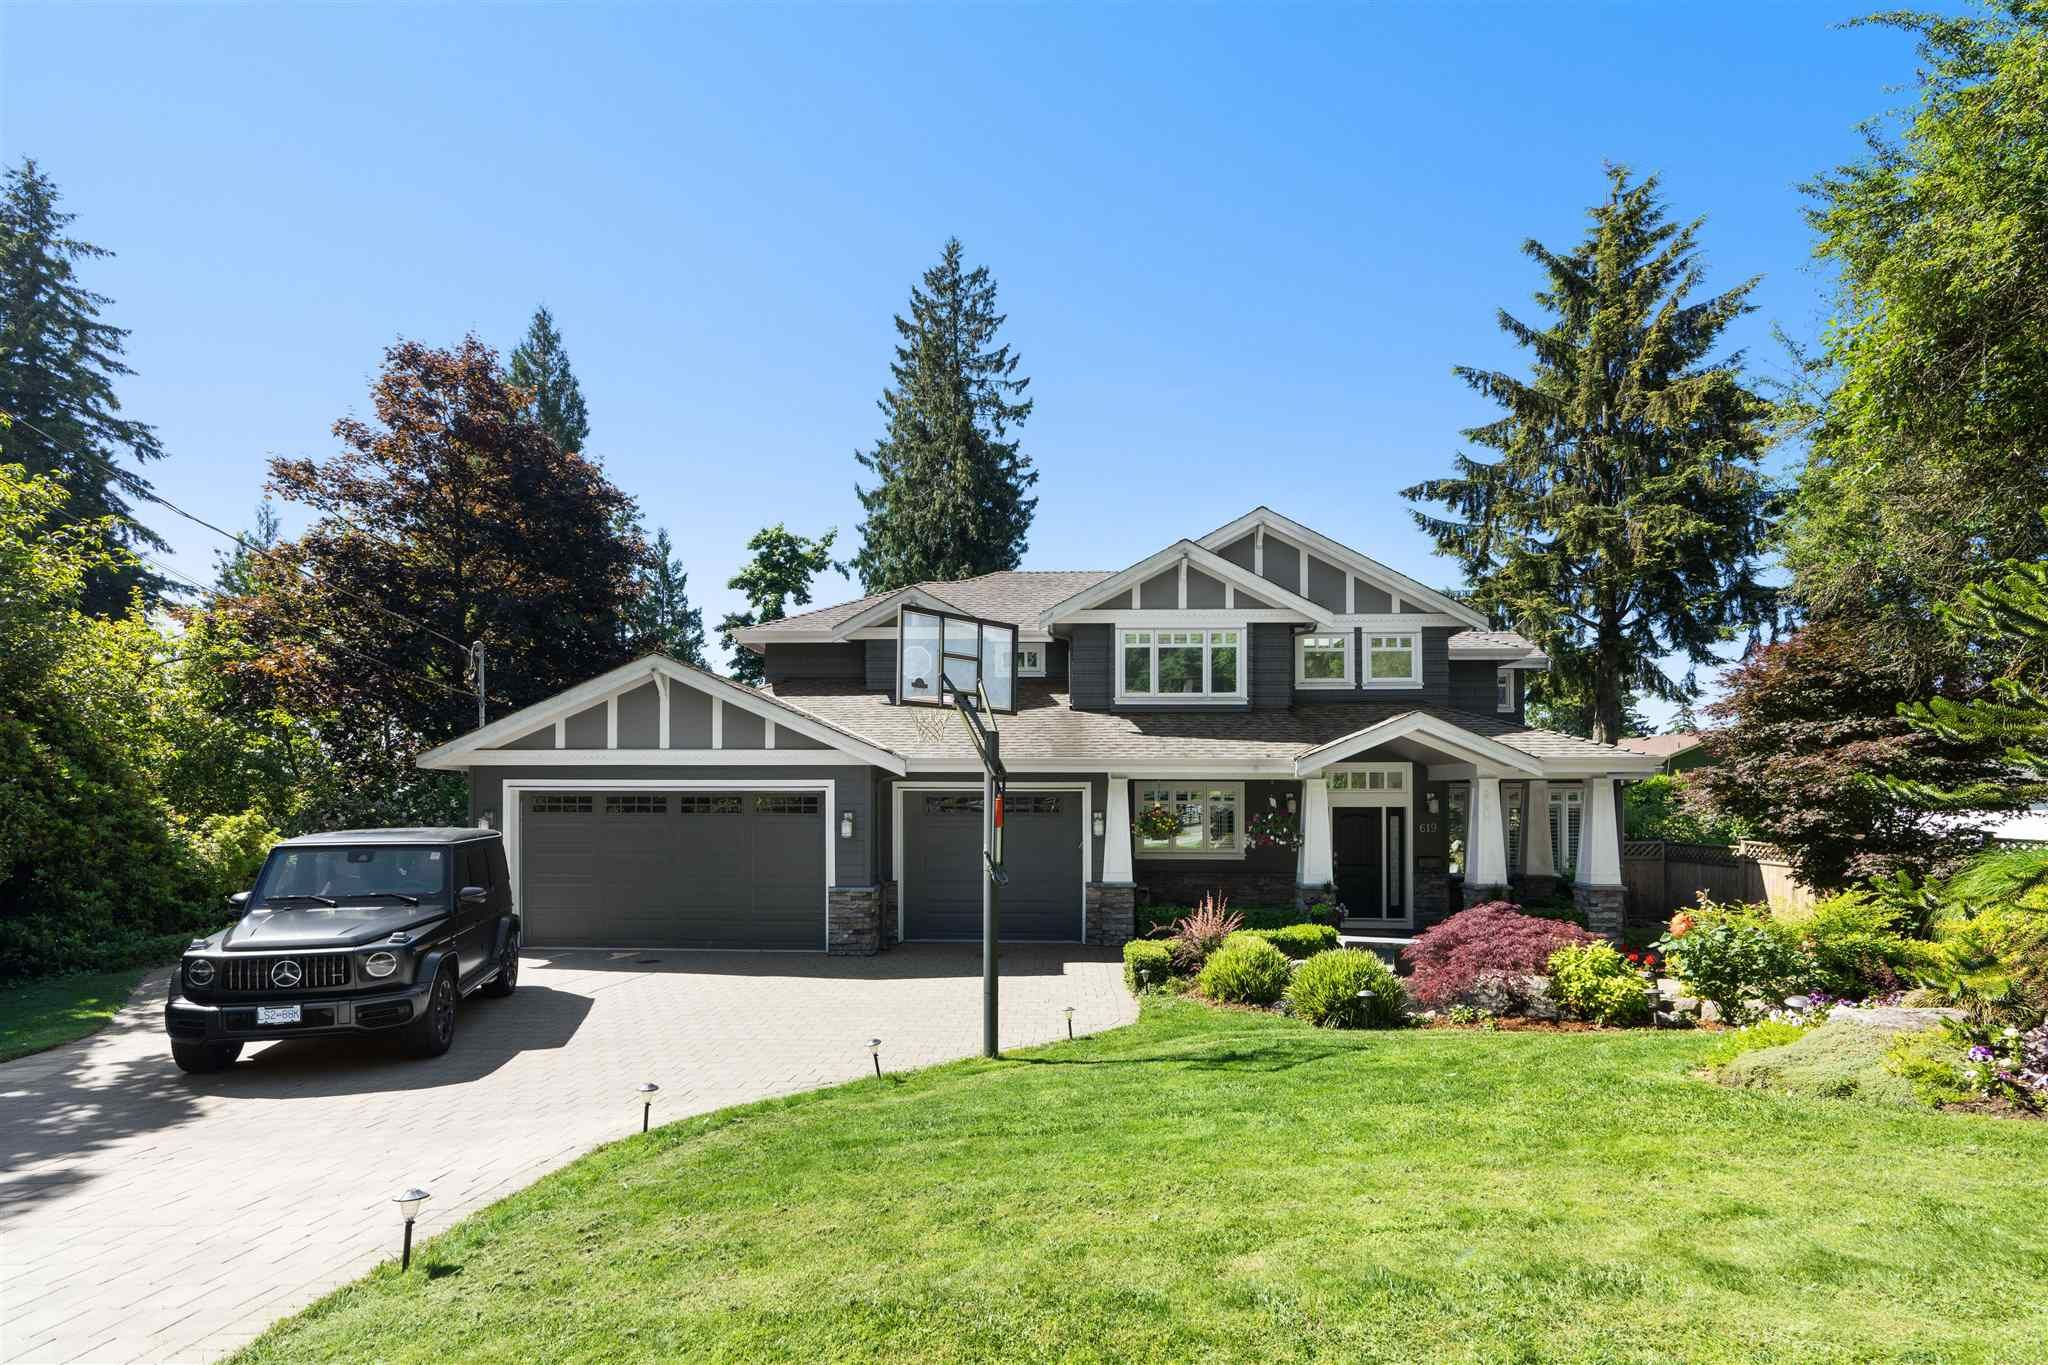 Main Photo: 619 E Queens Road in North Vancouver: Princess Park House for sale : MLS®# R2596912